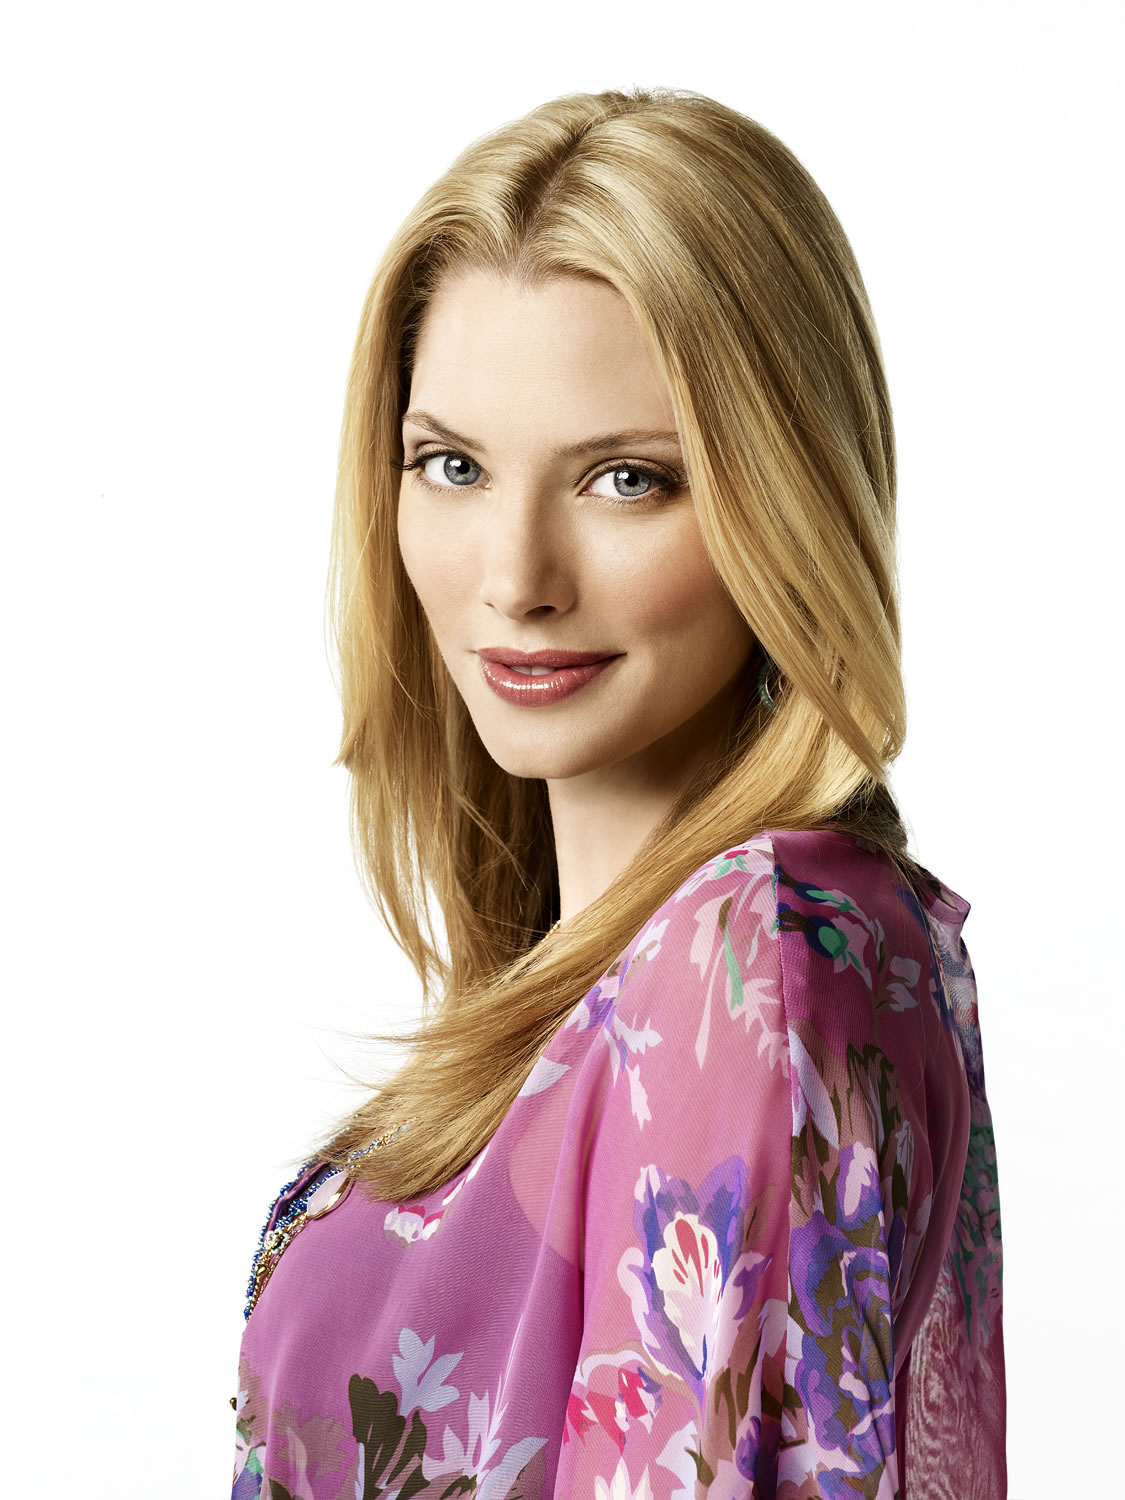 April Bowlby rules of engagement